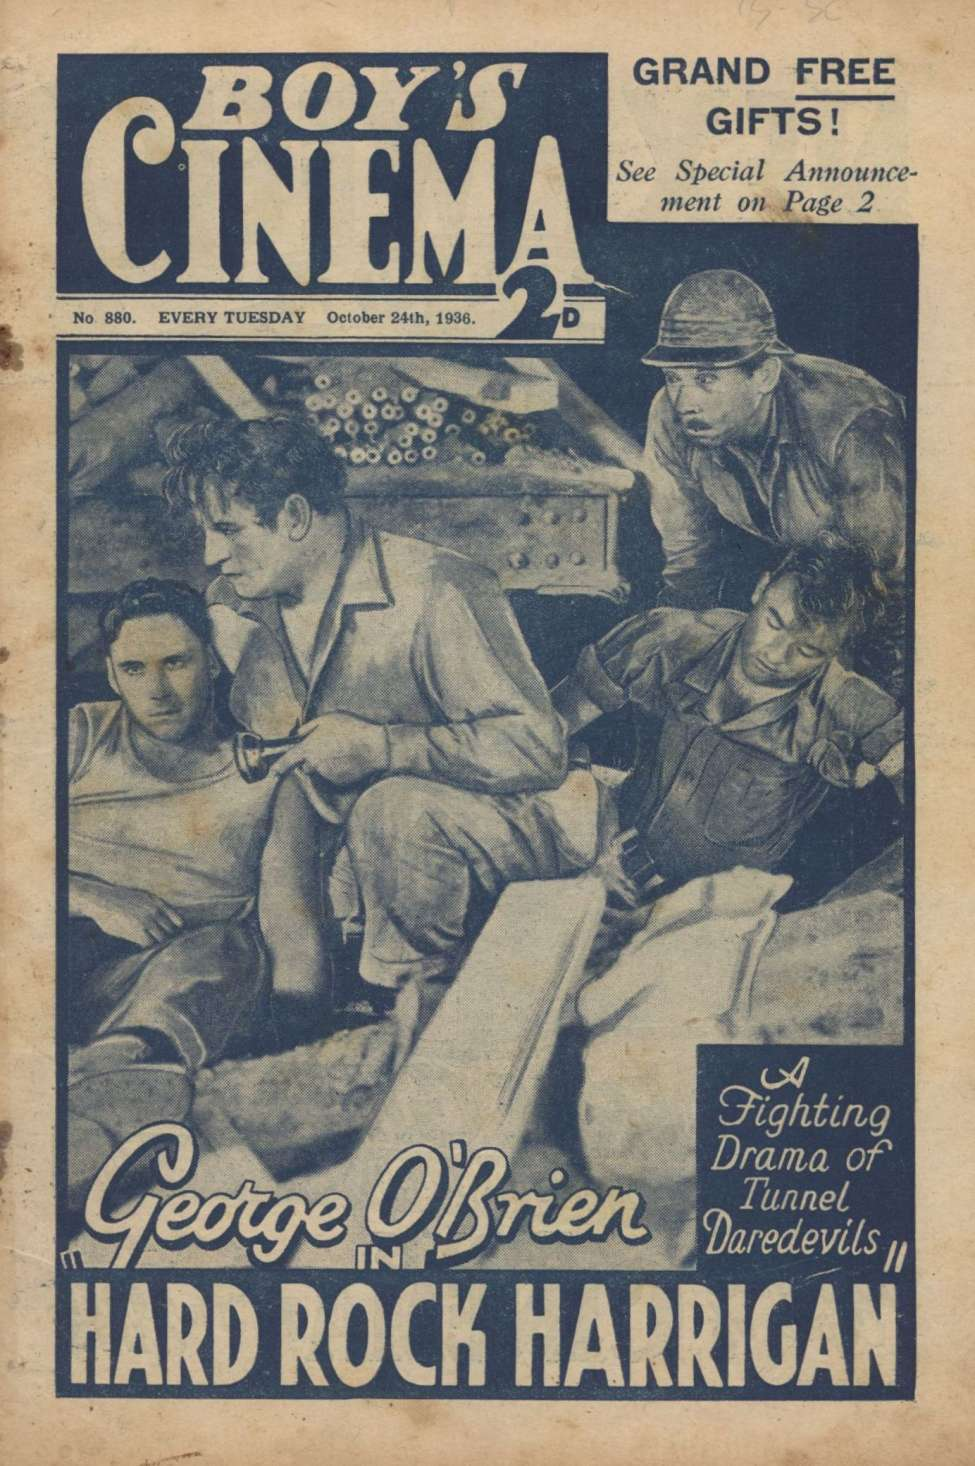 Comic Book Cover For Boy's Cinema 0880 - Hard Rock Harrigan starring George O'Brien